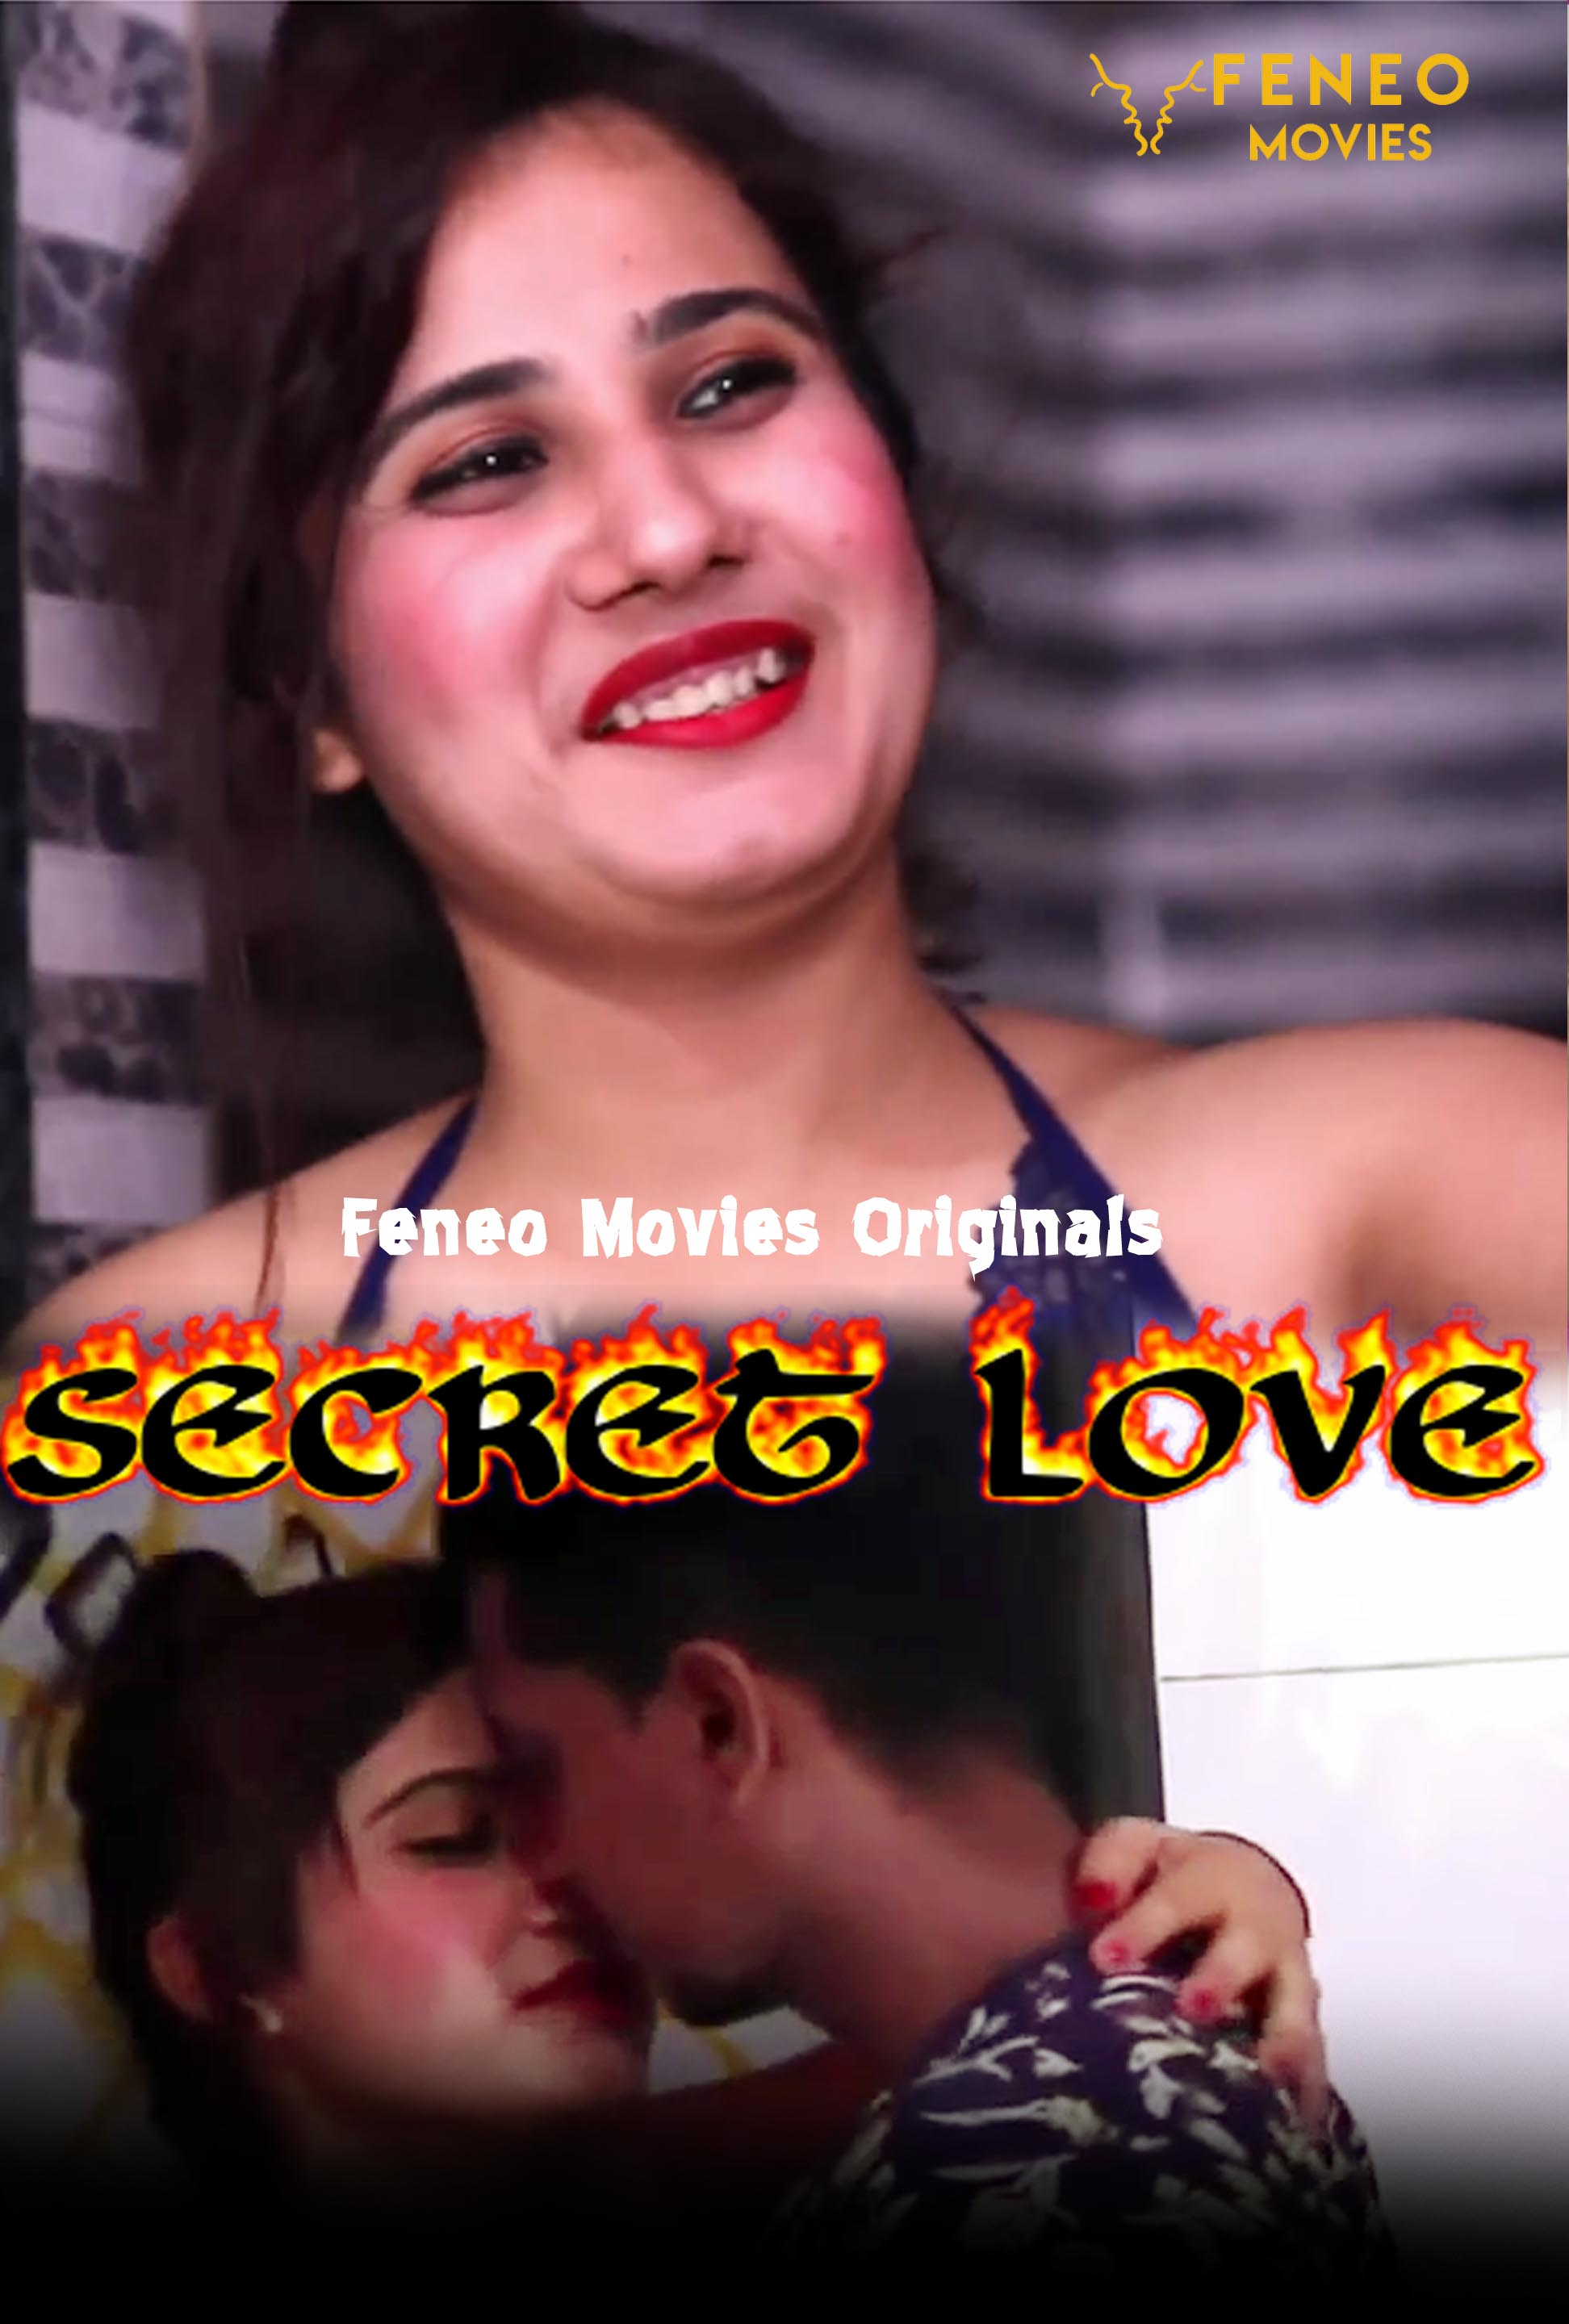 Secret Love 2020 S01E02 Hindi Feneomovies Original Web Series 720p HDRip 210MB Download